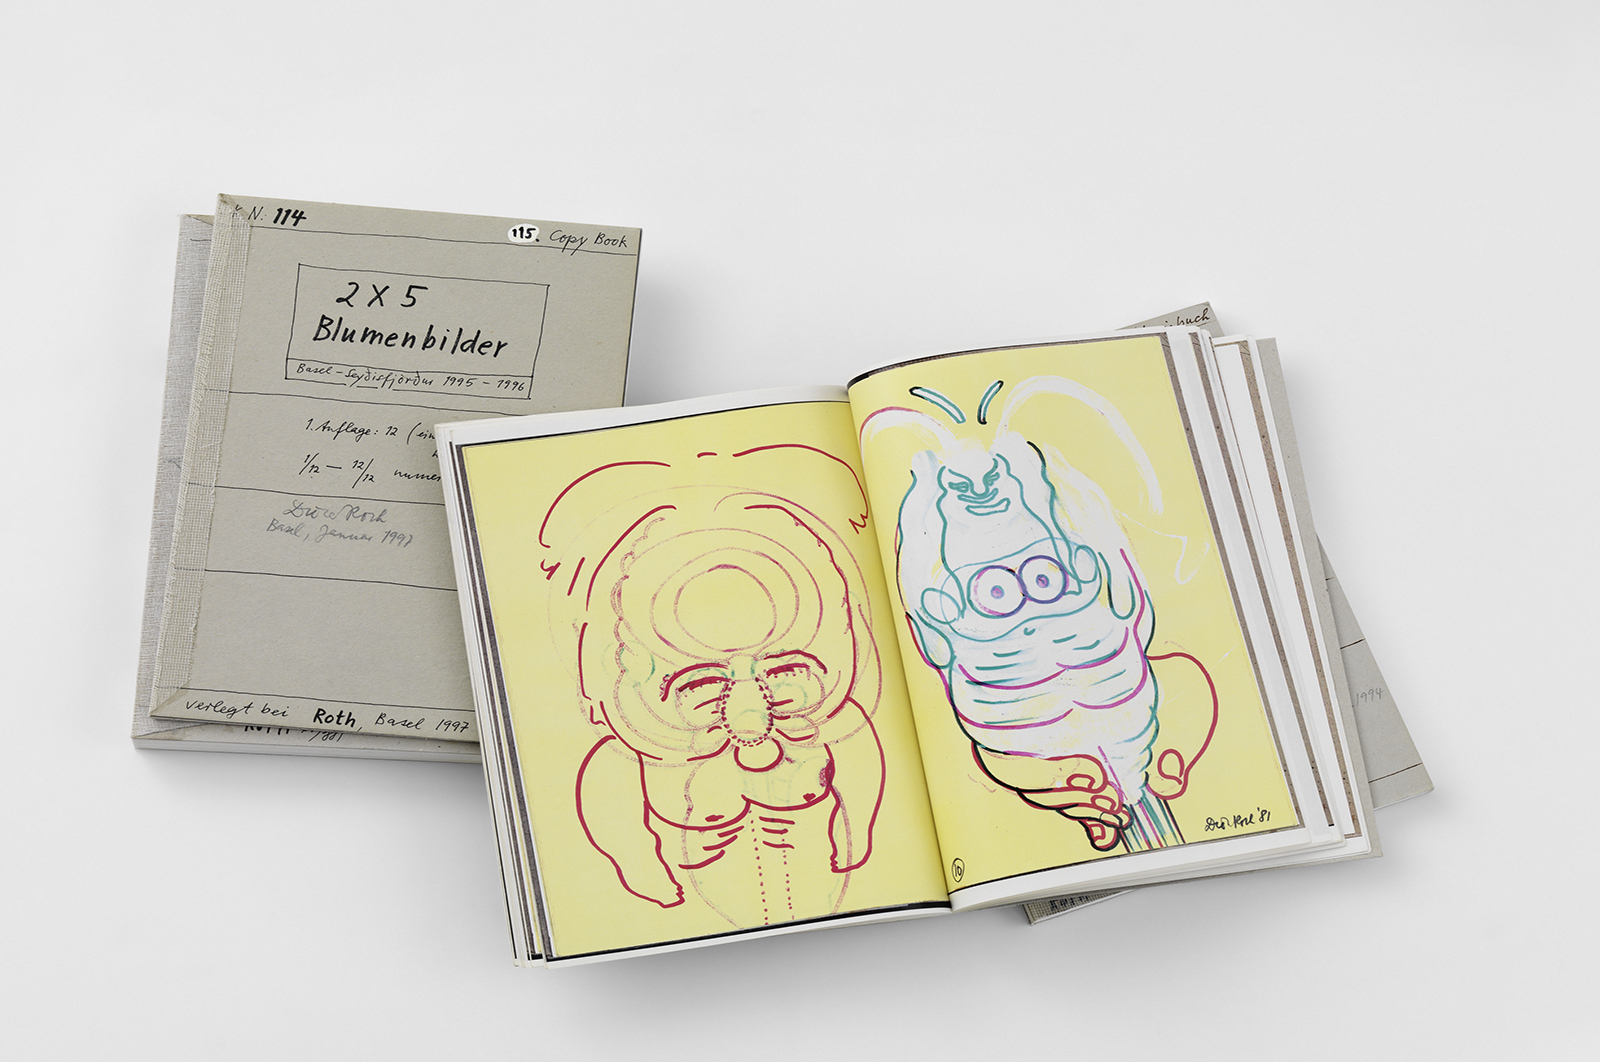 Dieter Roth, Copy books | Open pages of – pagine aperte di Copy book (No. 34) 13 lollies with backs, 1981, Hamburg | published by Dieter Roth's Verlag, Basel 1990-94 | photo: Stefan Altenburger Photography Zürich | © Dieter Roth Estate | Courtesy Hauser & Wirth